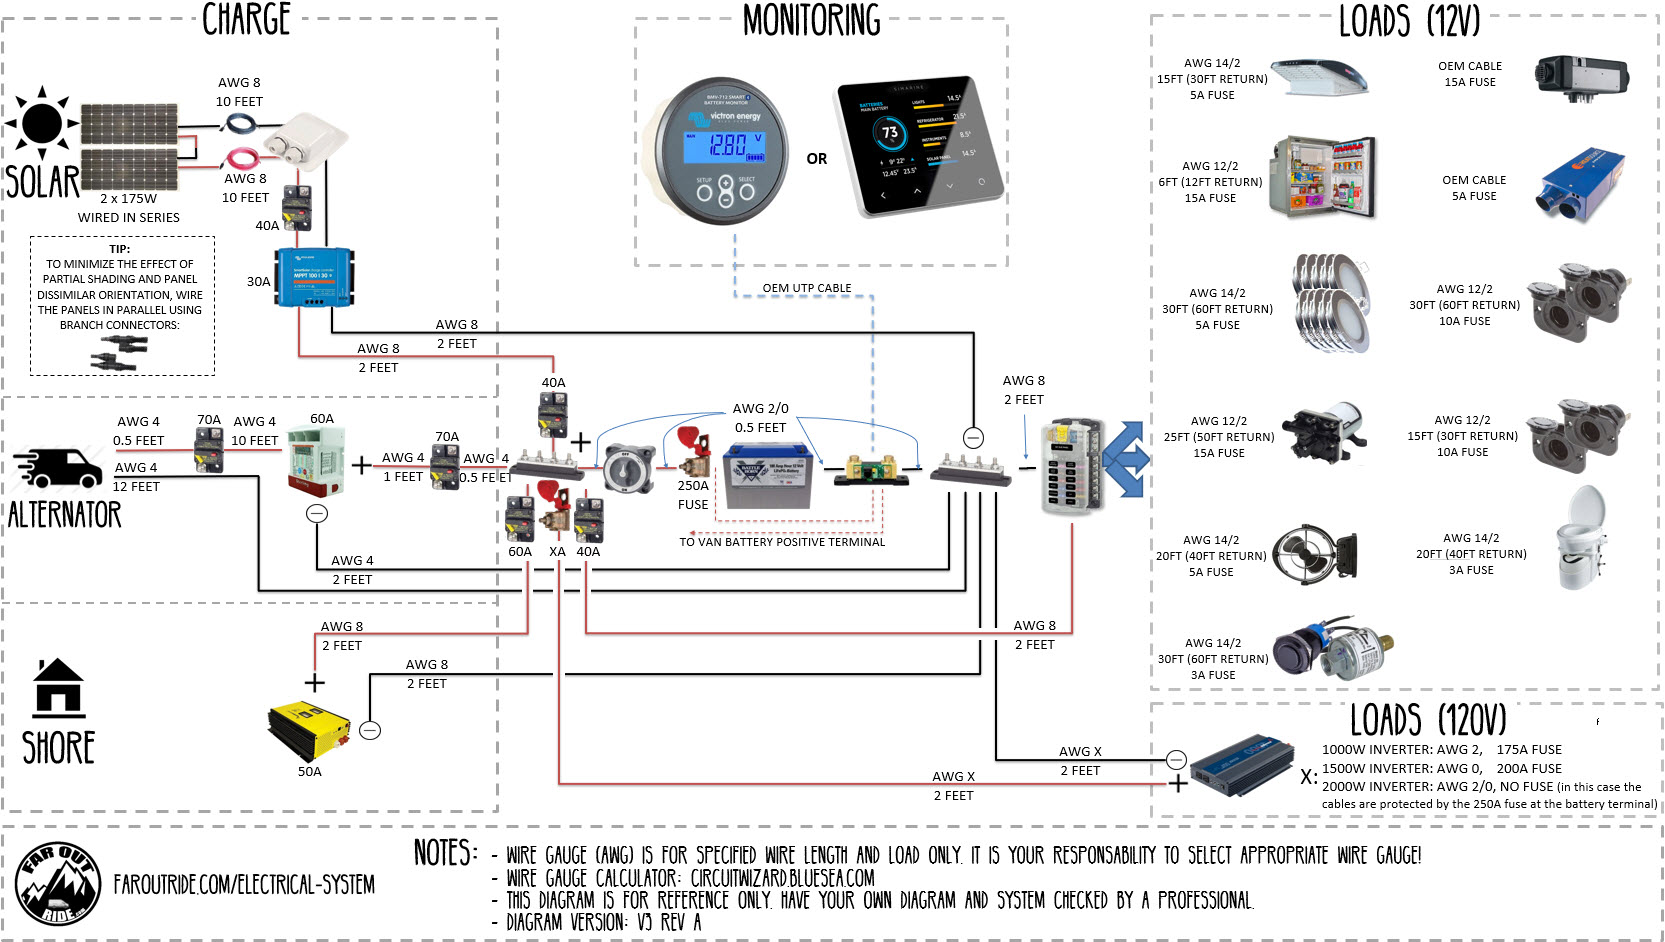 Diagram Interactive Wiring Diagram For Camper Van Skoolie Rv